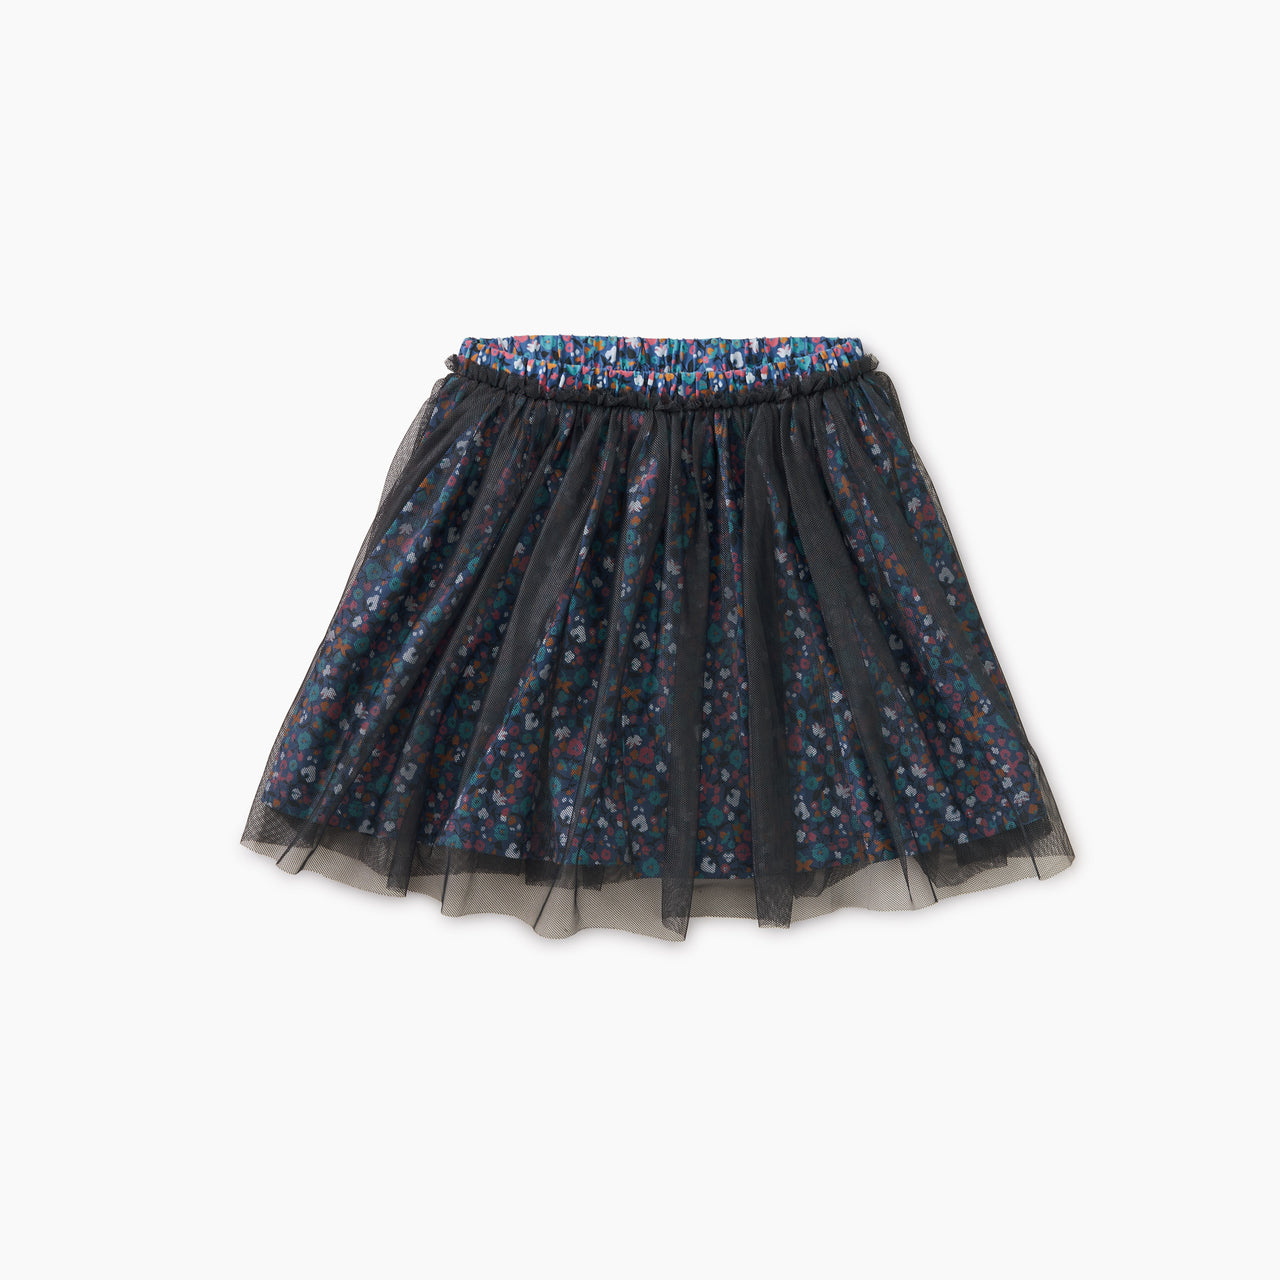 Sunrise Floral Patterned Tulle Twirl Skirt